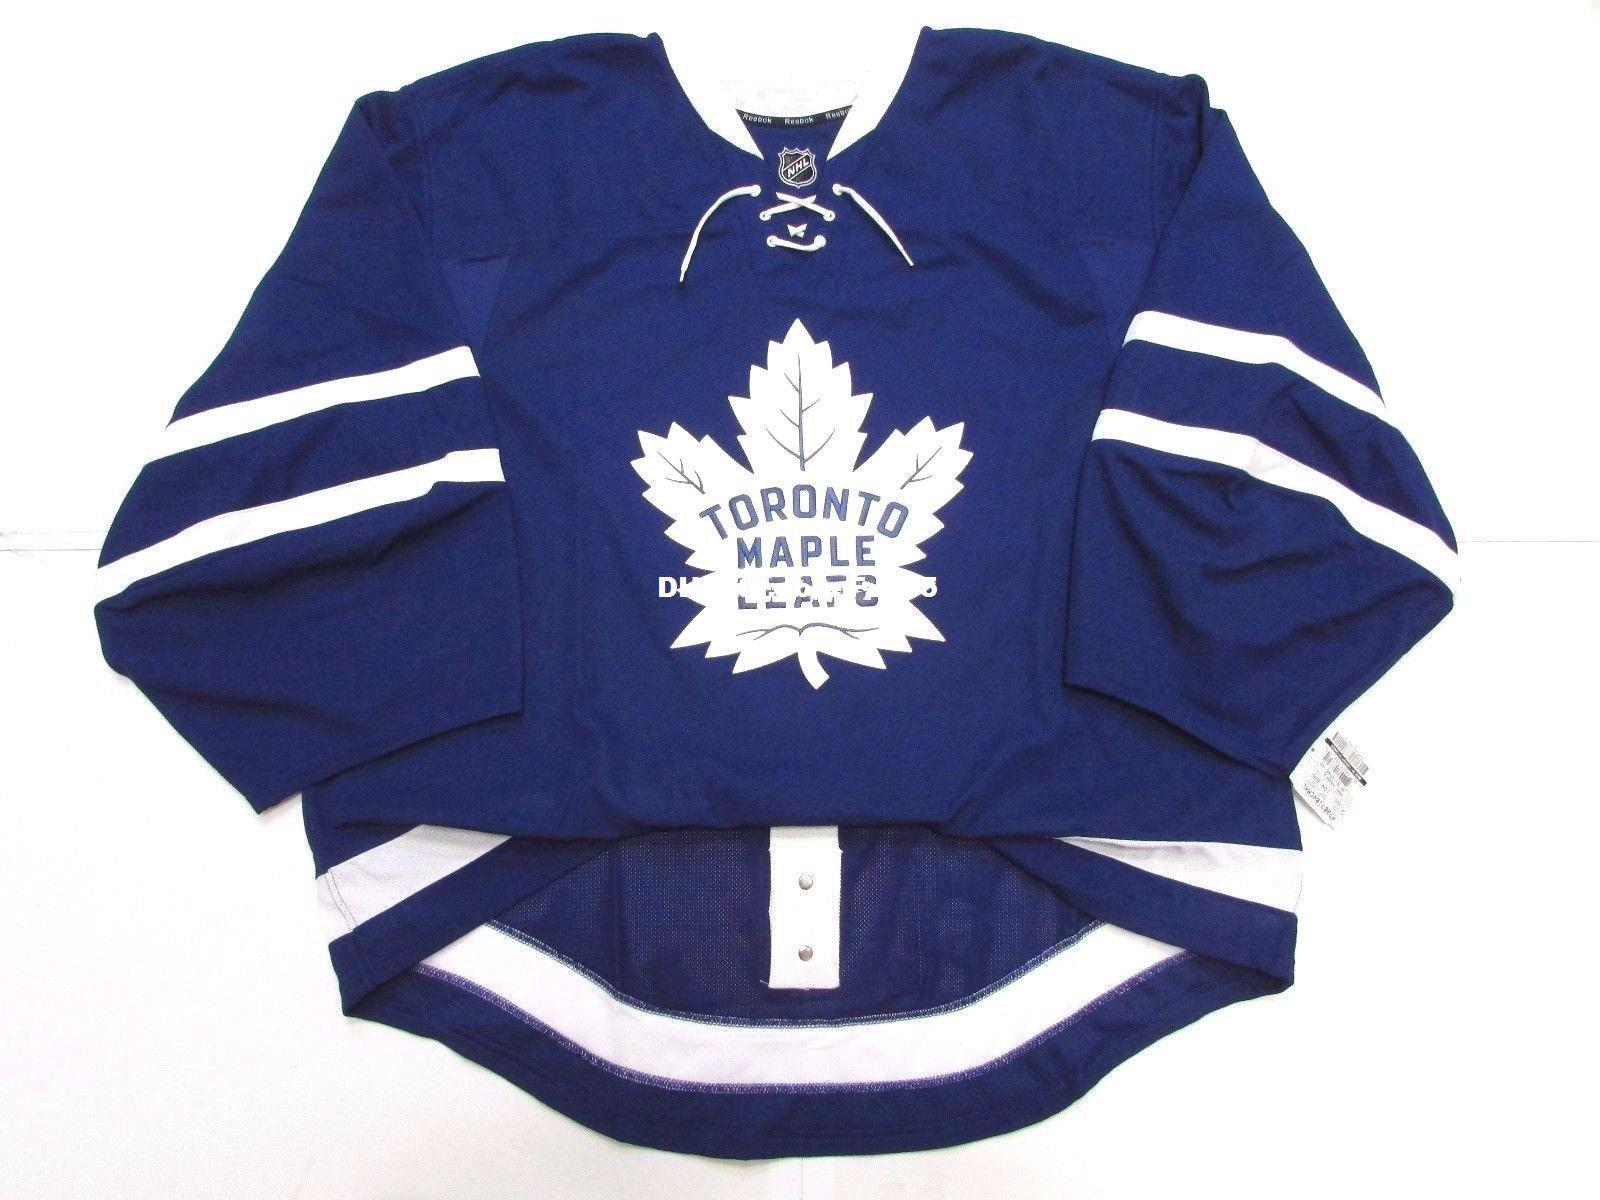 2019 Cheap Custom TORONTO MAPLE LEAFS AUTHENTIC NEW HOME EDGE JERSEY GOALIE  CUT Mens Stitched Personalized Hockey Jerseys From Fanatics sports 24b8a82a6